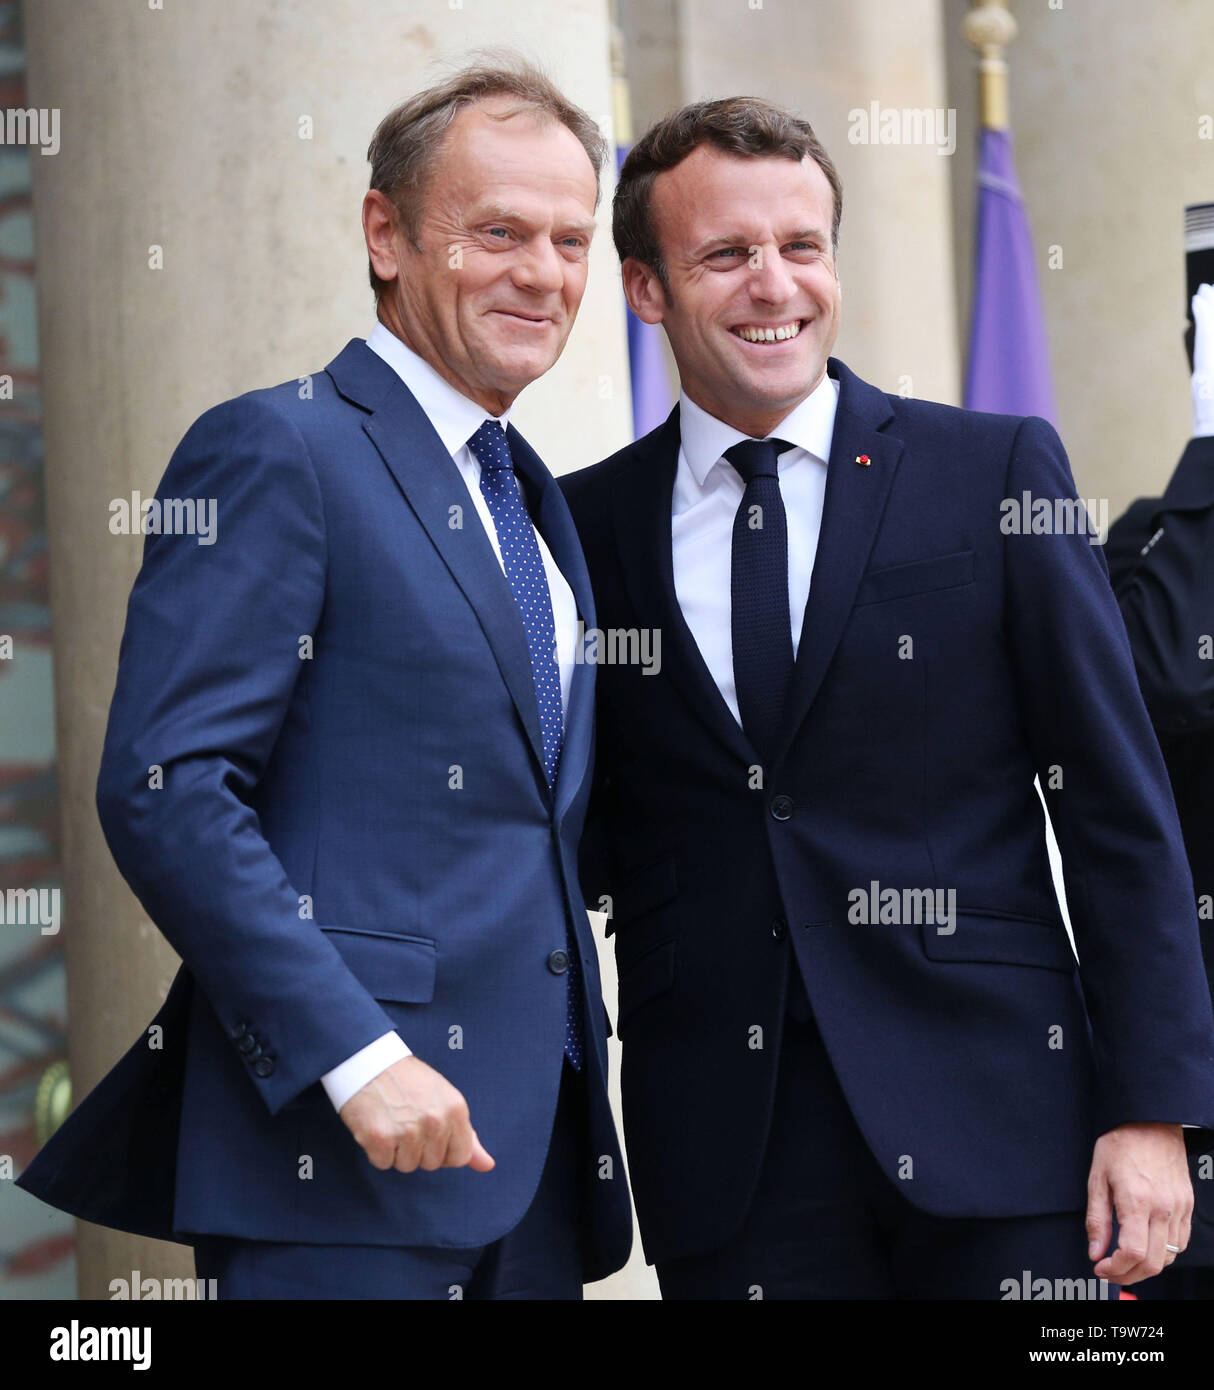 Paris, France. 20th May, 2019. French President Emmanuel Macron (R) meets with visiting European Council President Donald Tusk at the Elysee Palace in Paris, France, May 20, 2019. Credit: Gao Jing/Xinhua/Alamy Live News - Stock Image